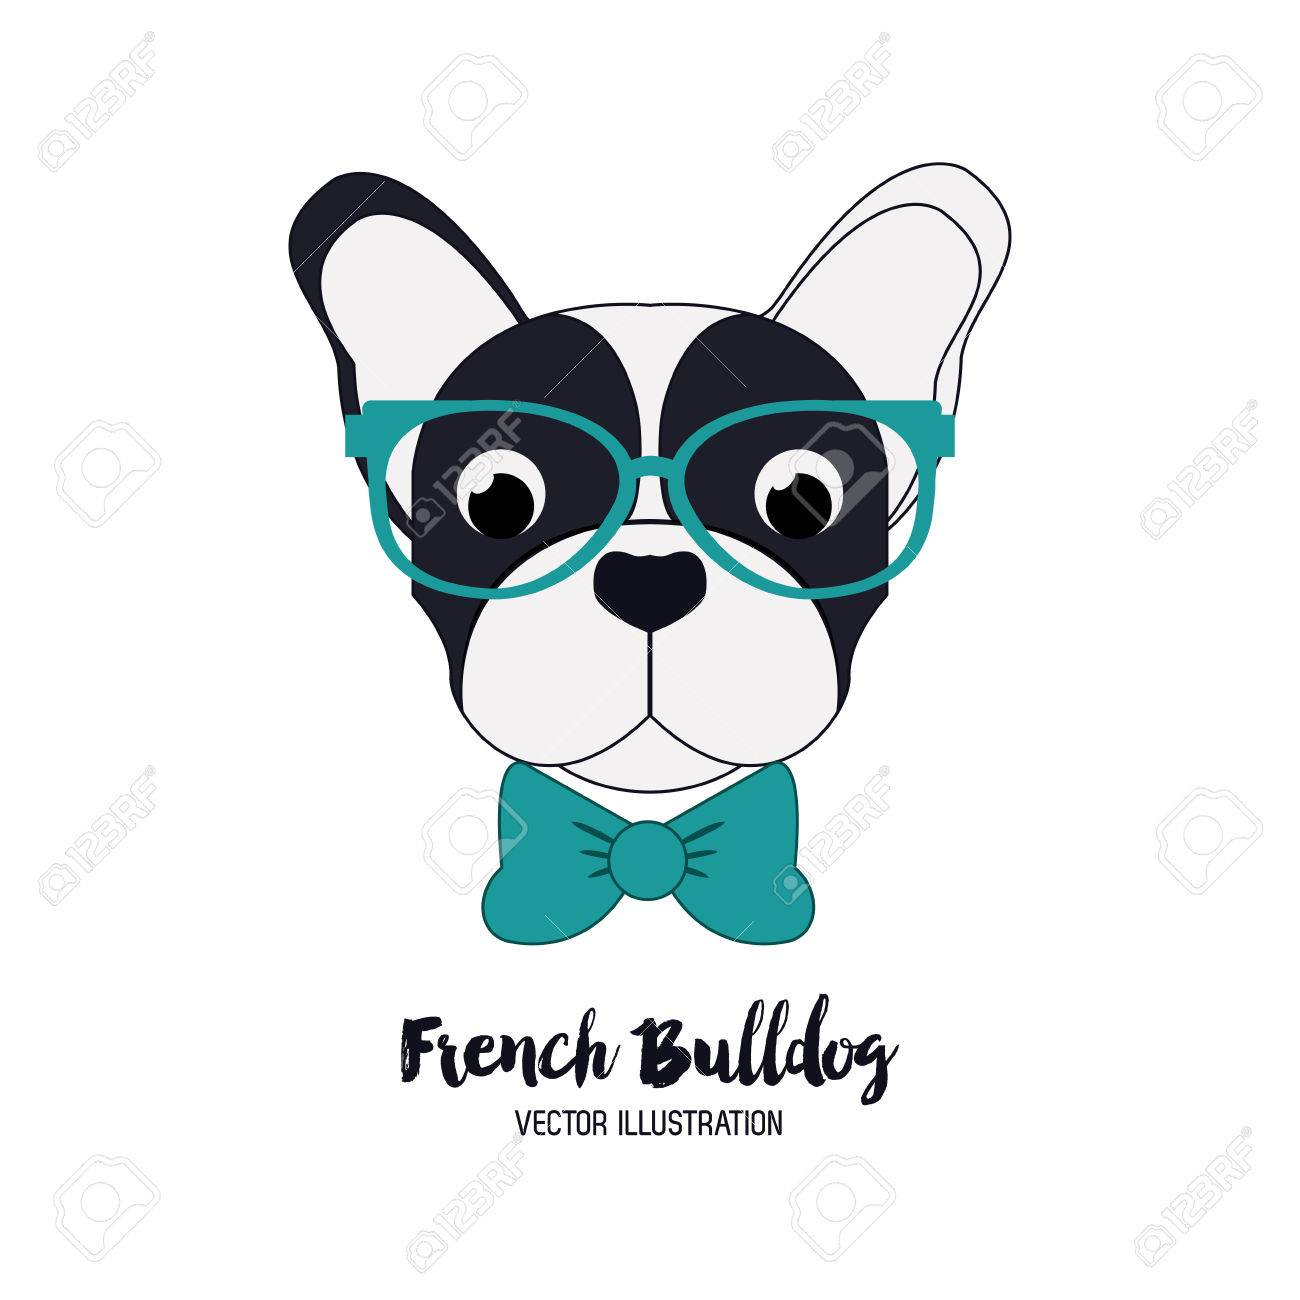 Dog concept with french bulldog icon design, vector illustration 10 eps graphic. - 54450705